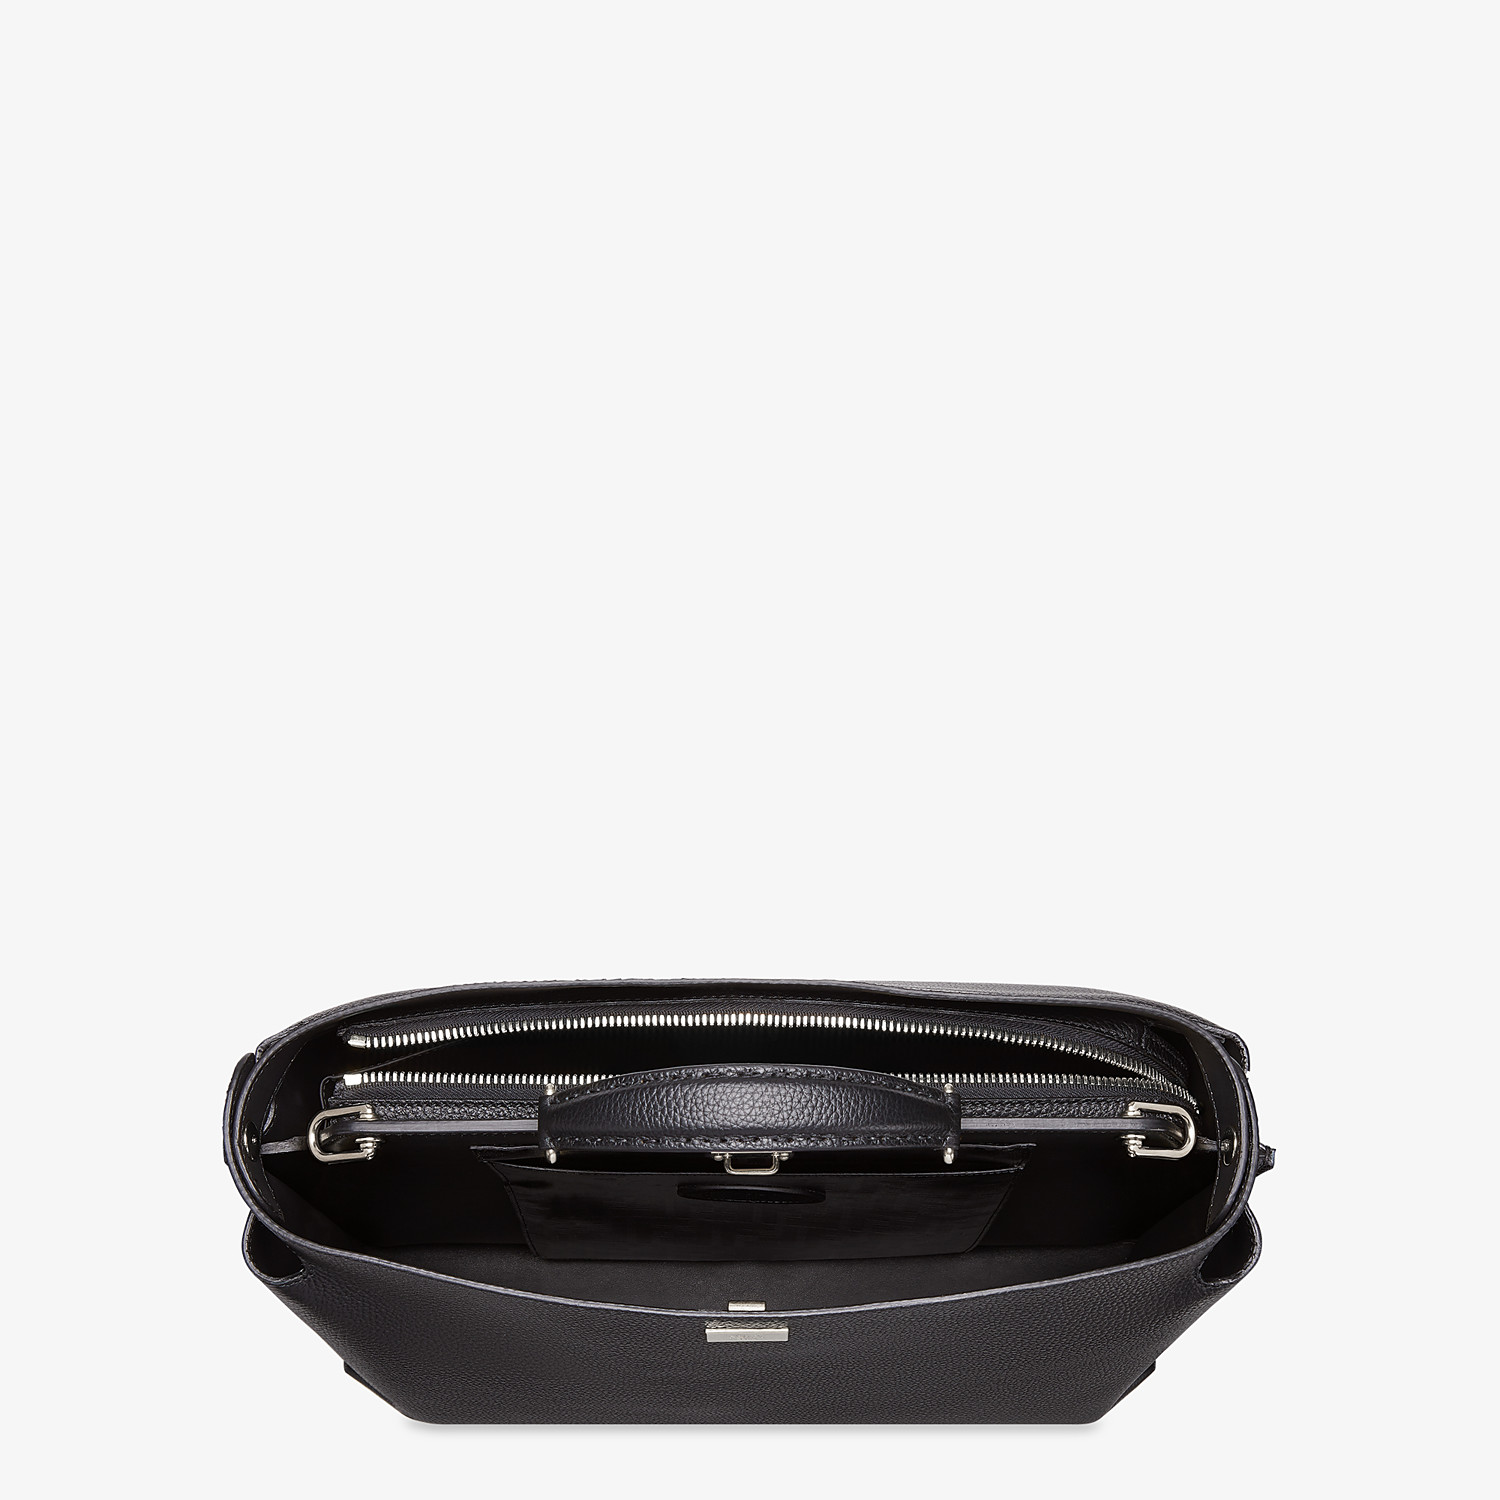 FENDI PEEKABOO ICONIC ESSENTIAL - Tasche aus Leder in Schwarz - view 4 detail